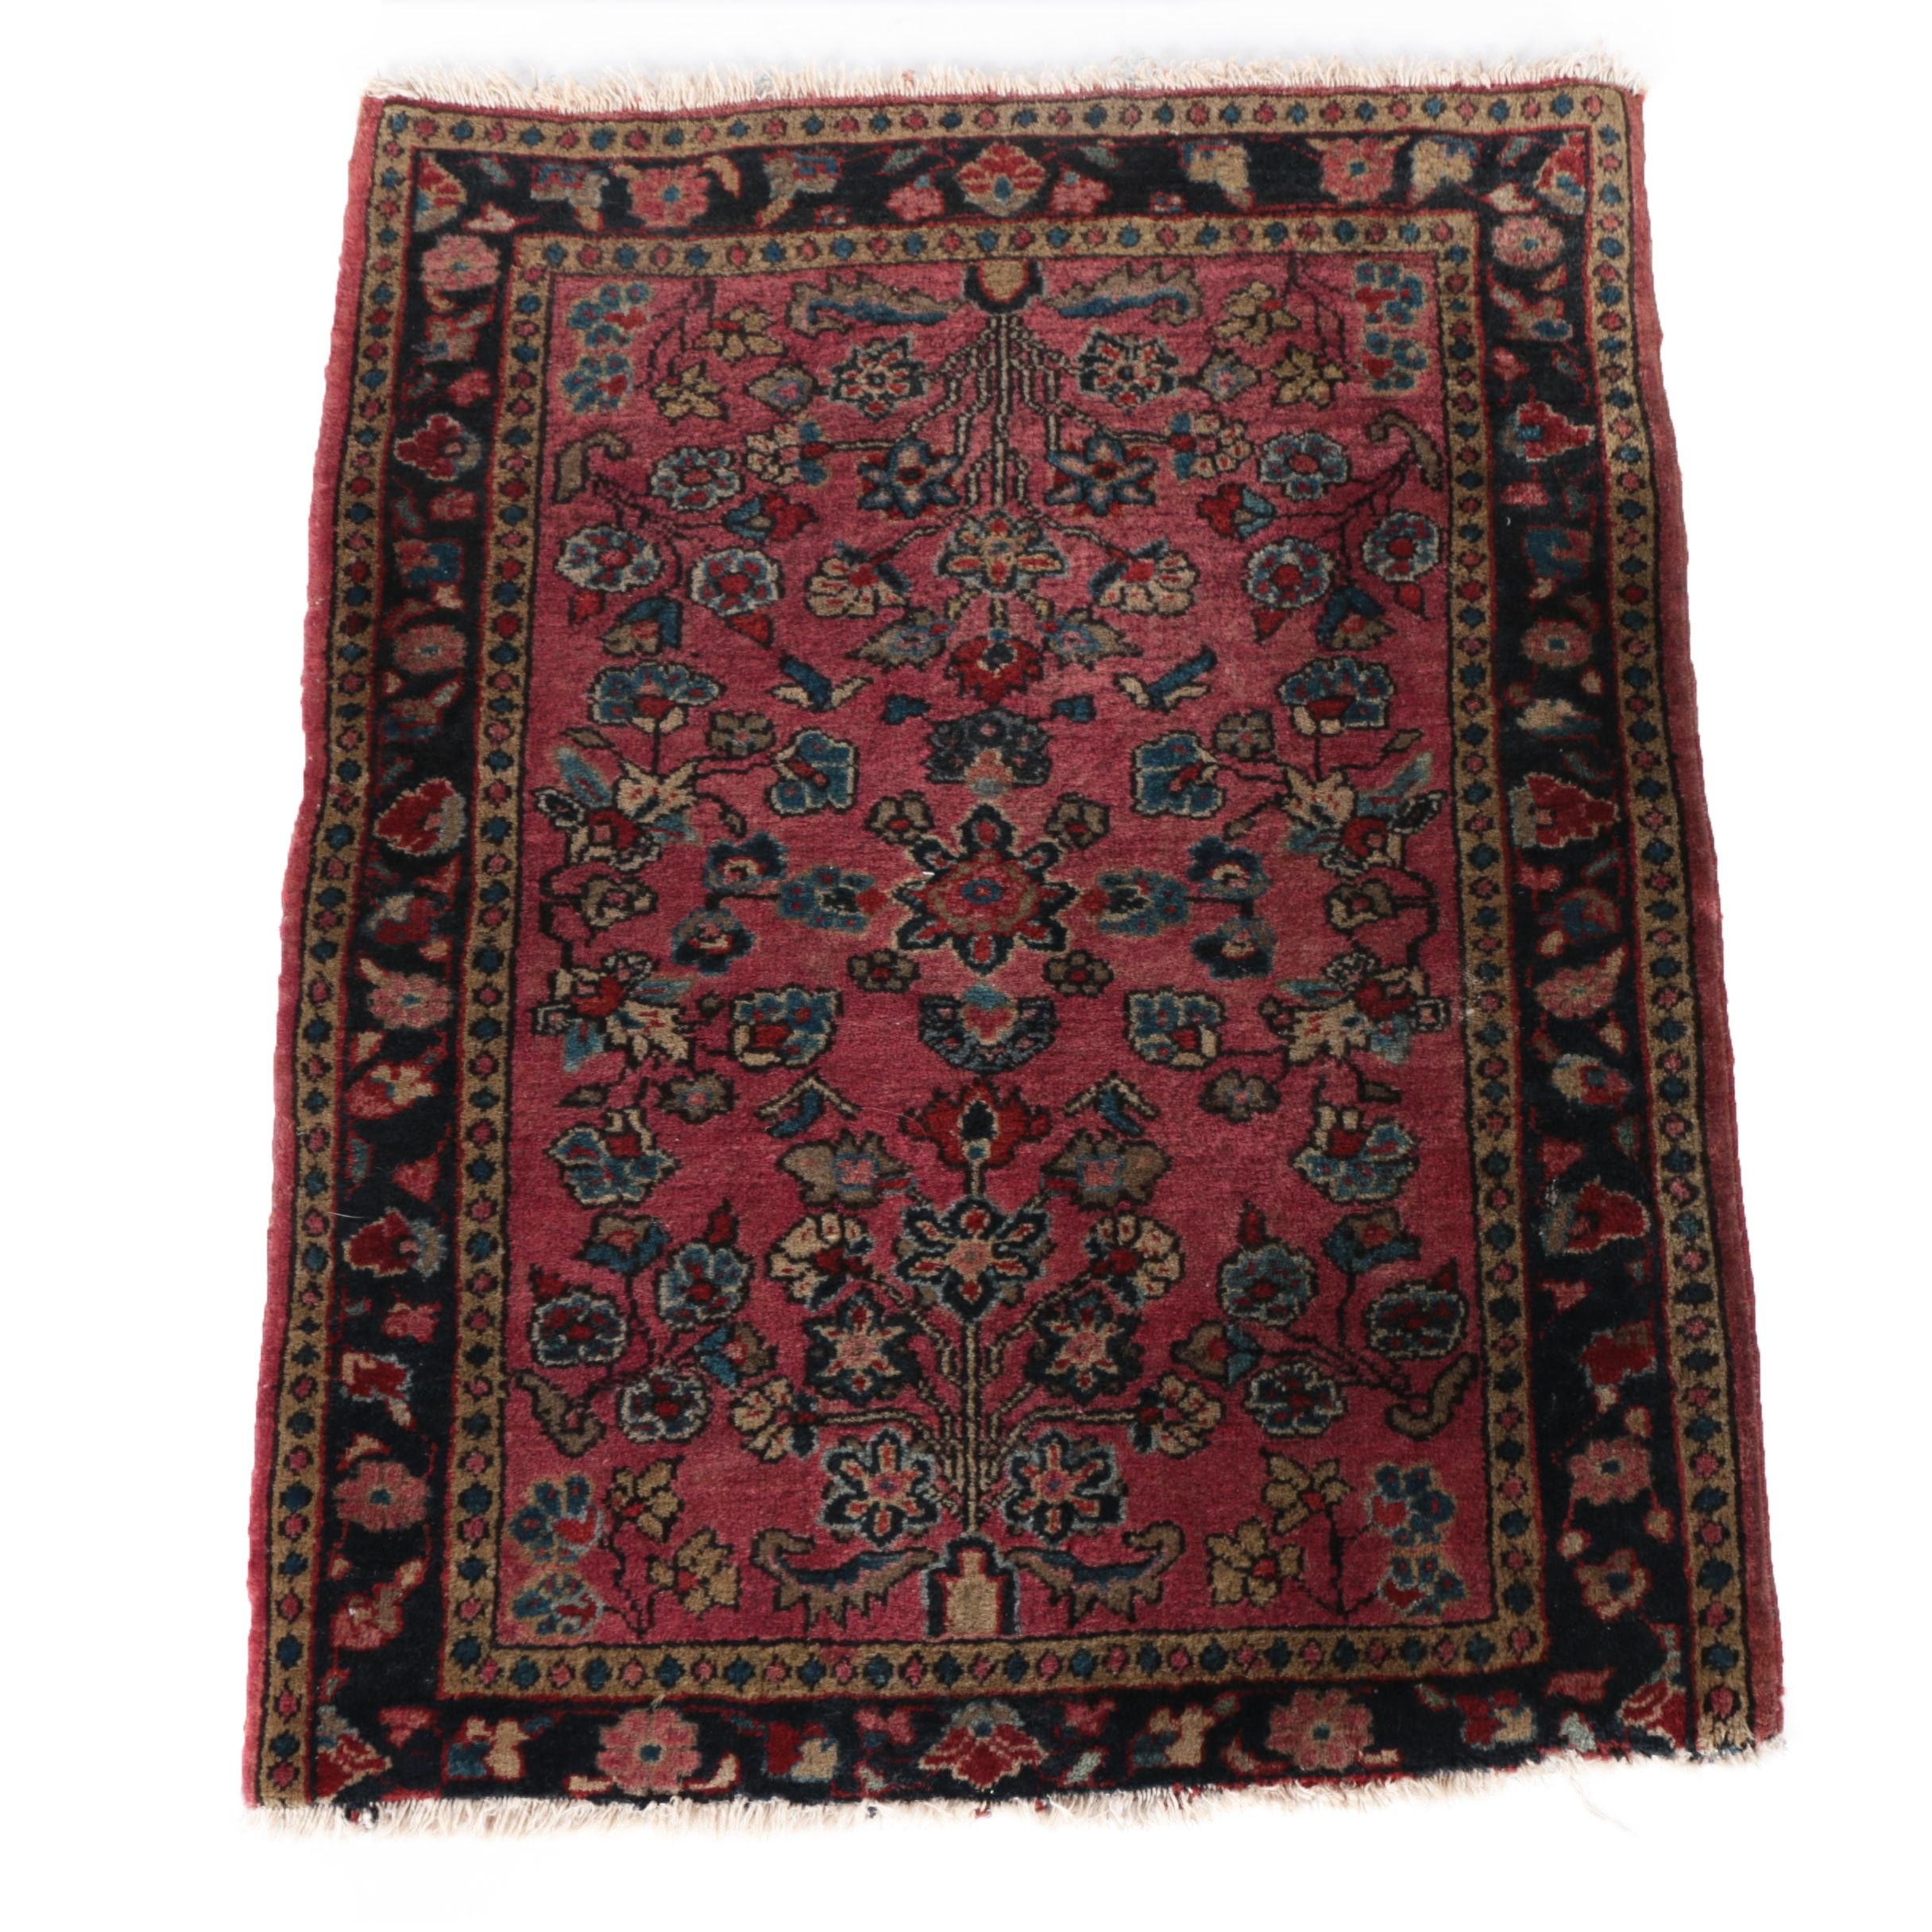 Semi-Antique Hand-Knotted Persian Mehriban Wool Accent Rug